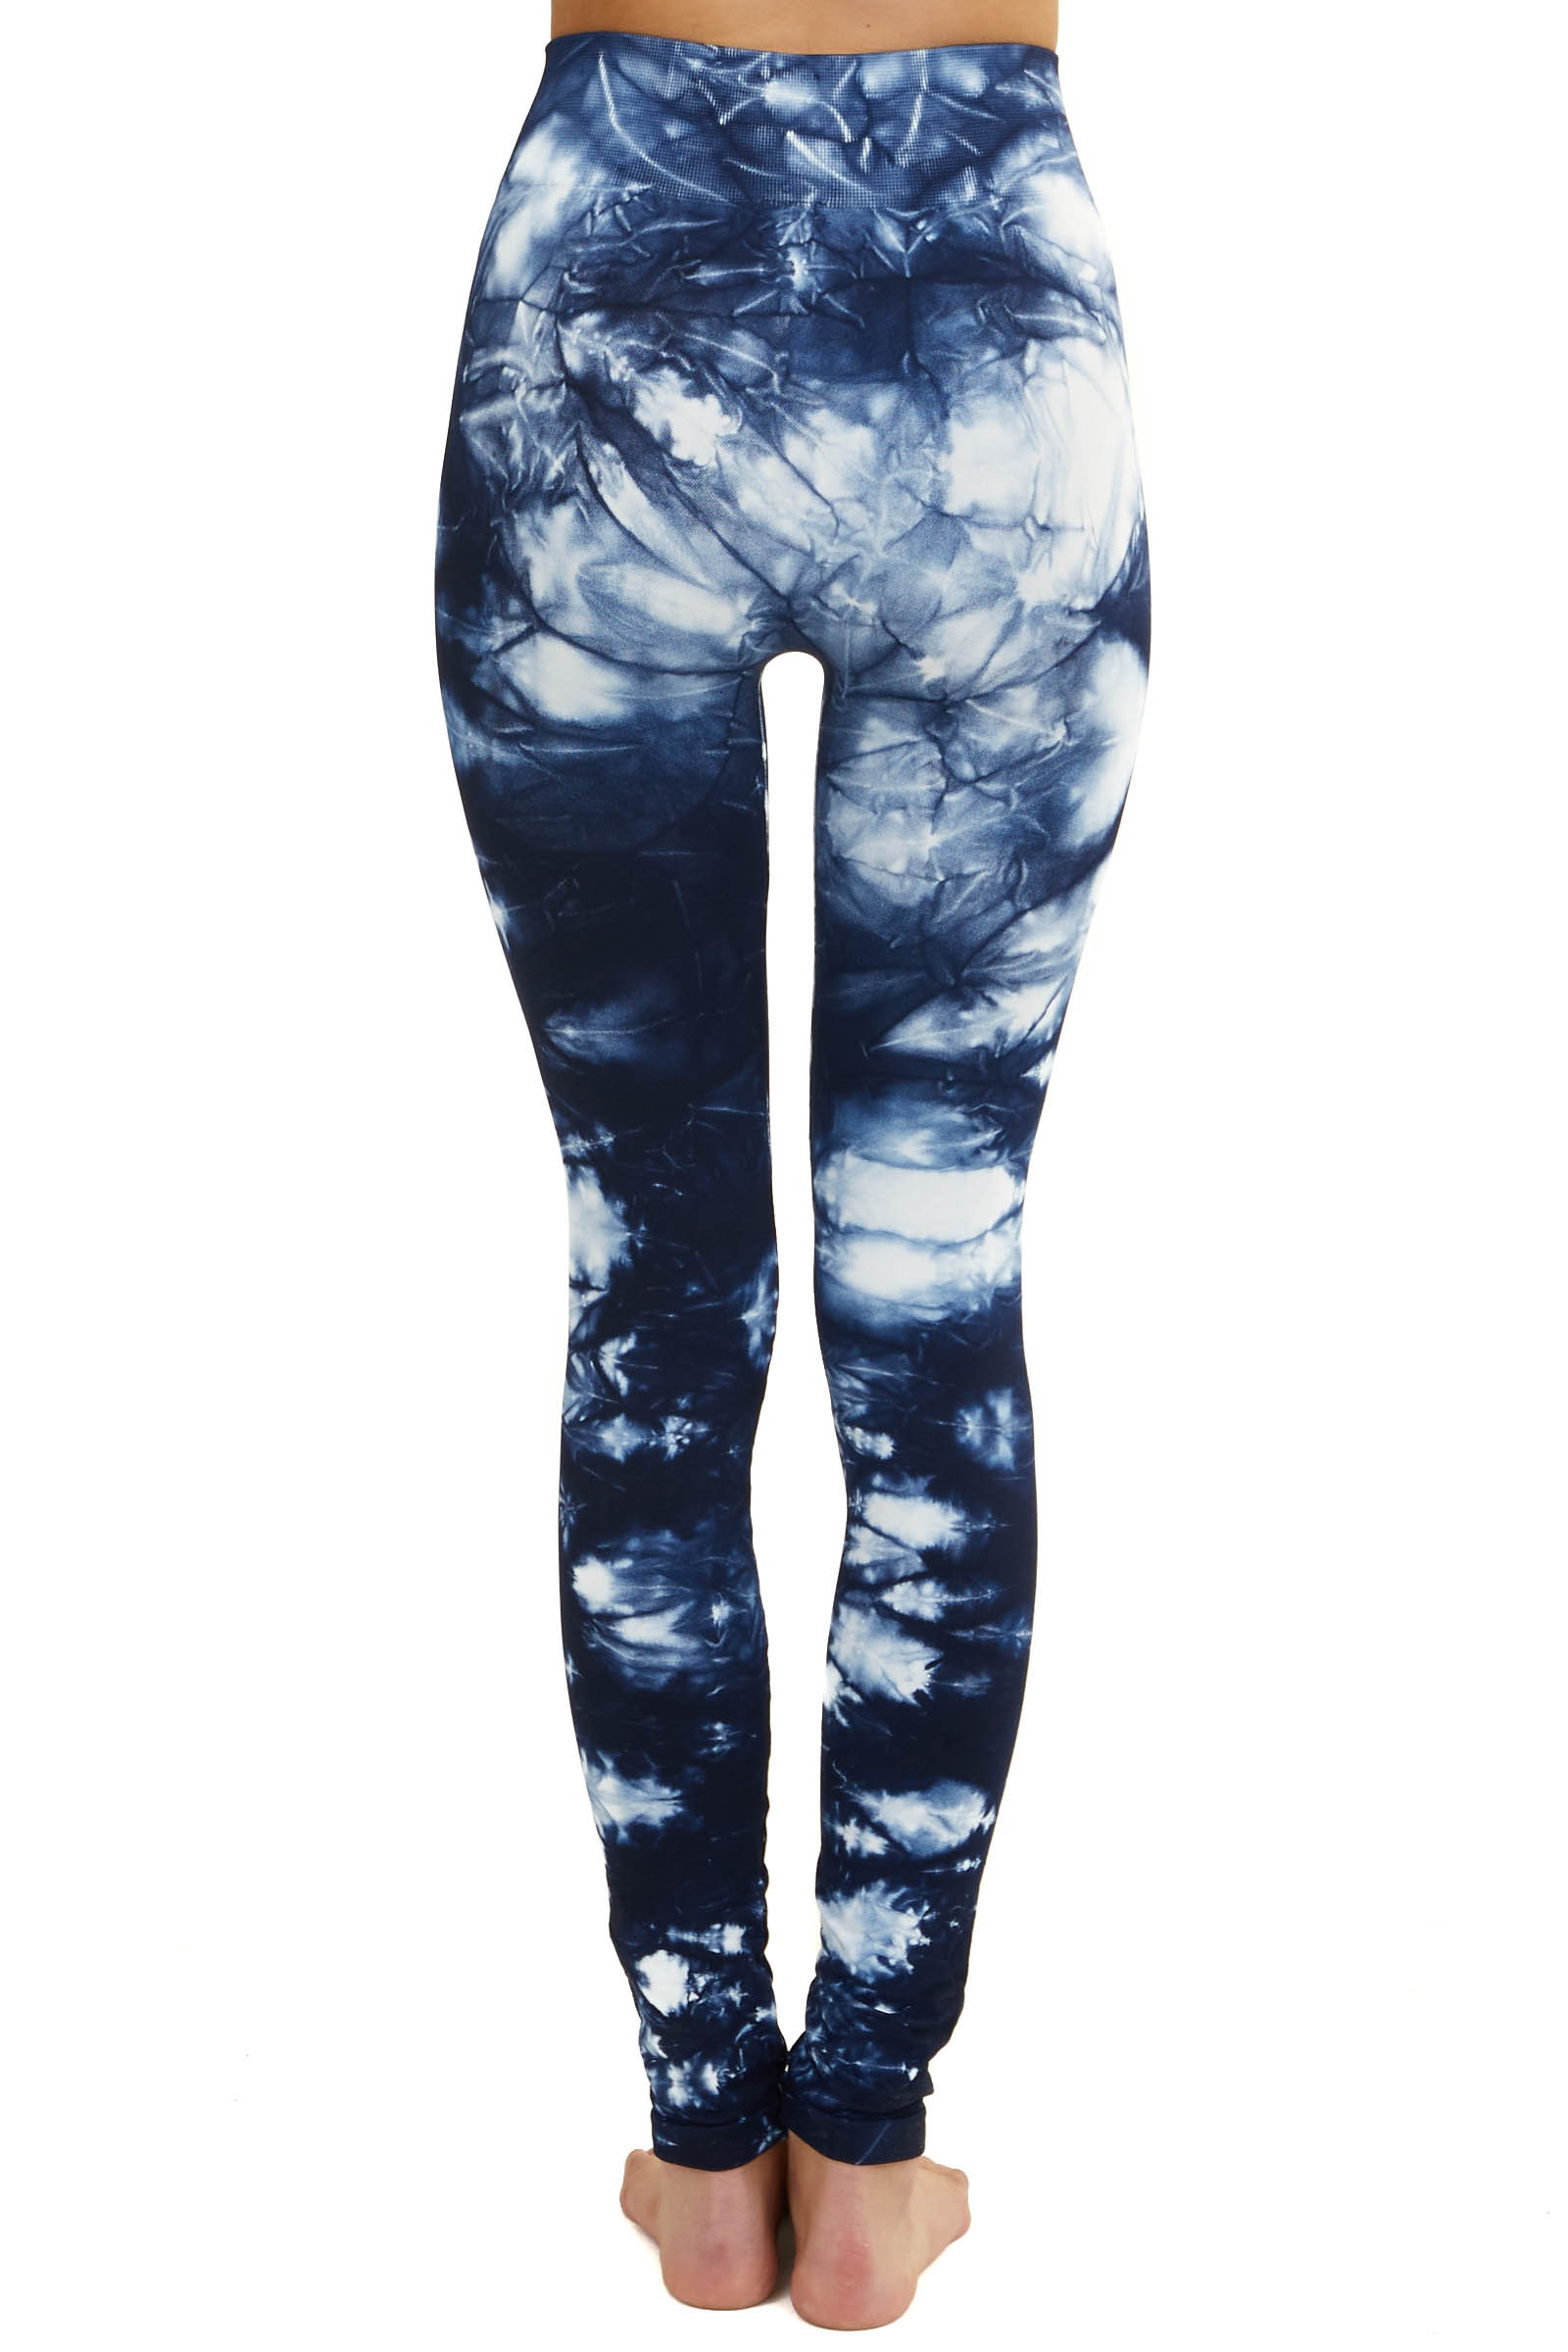 Navy Blue and White Tie Dye High Waisted Leggings